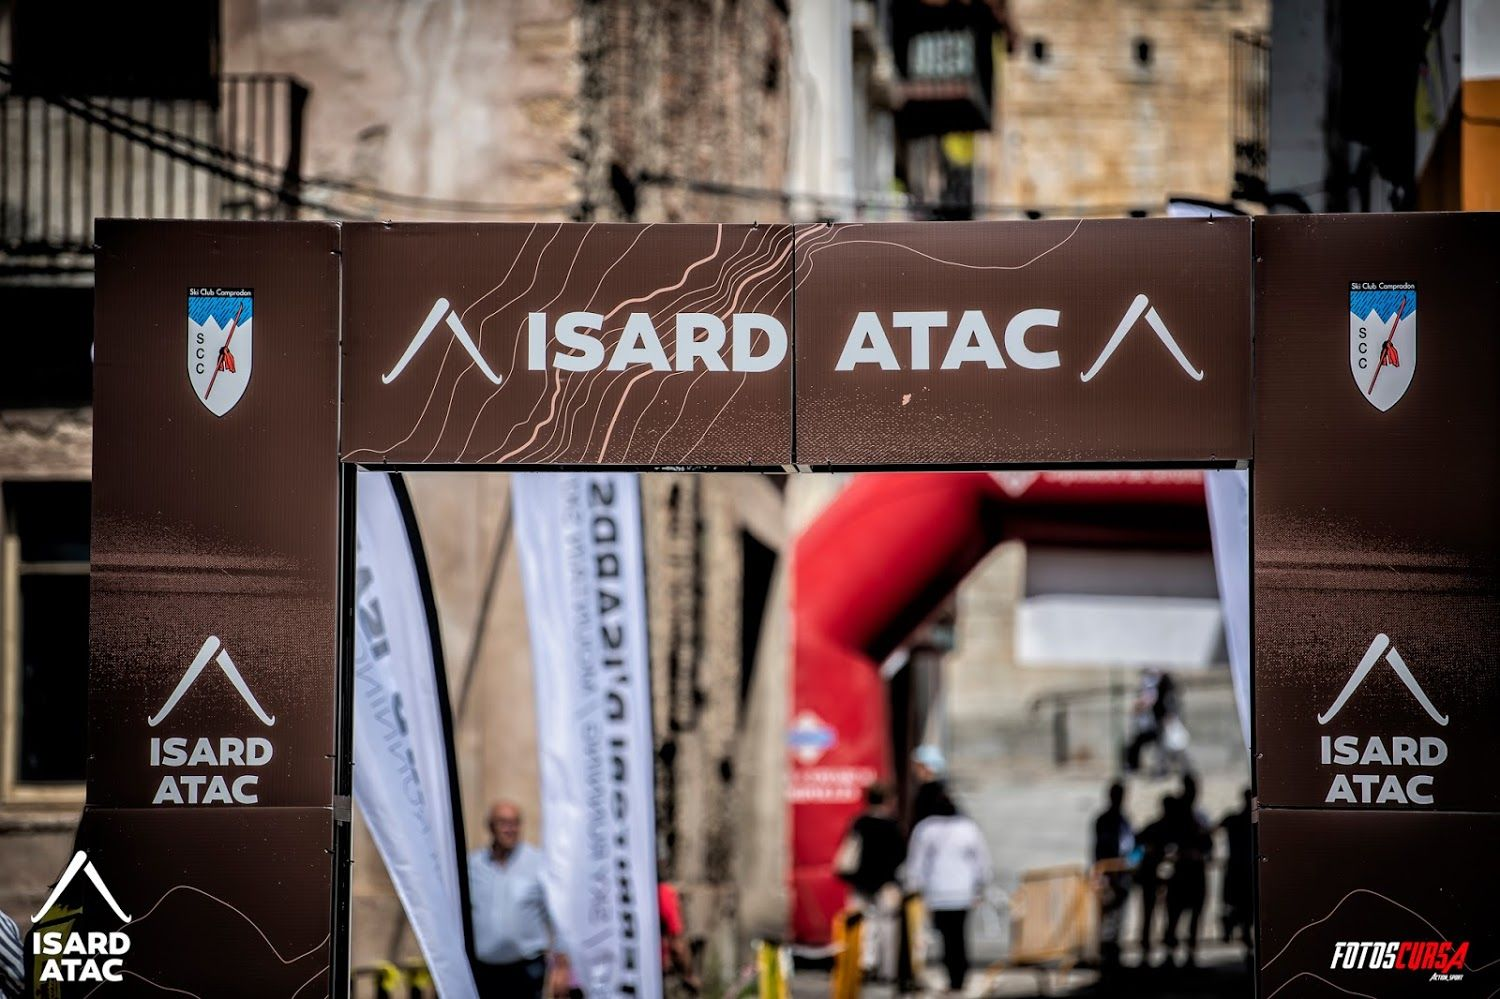 Isard Atac Bike